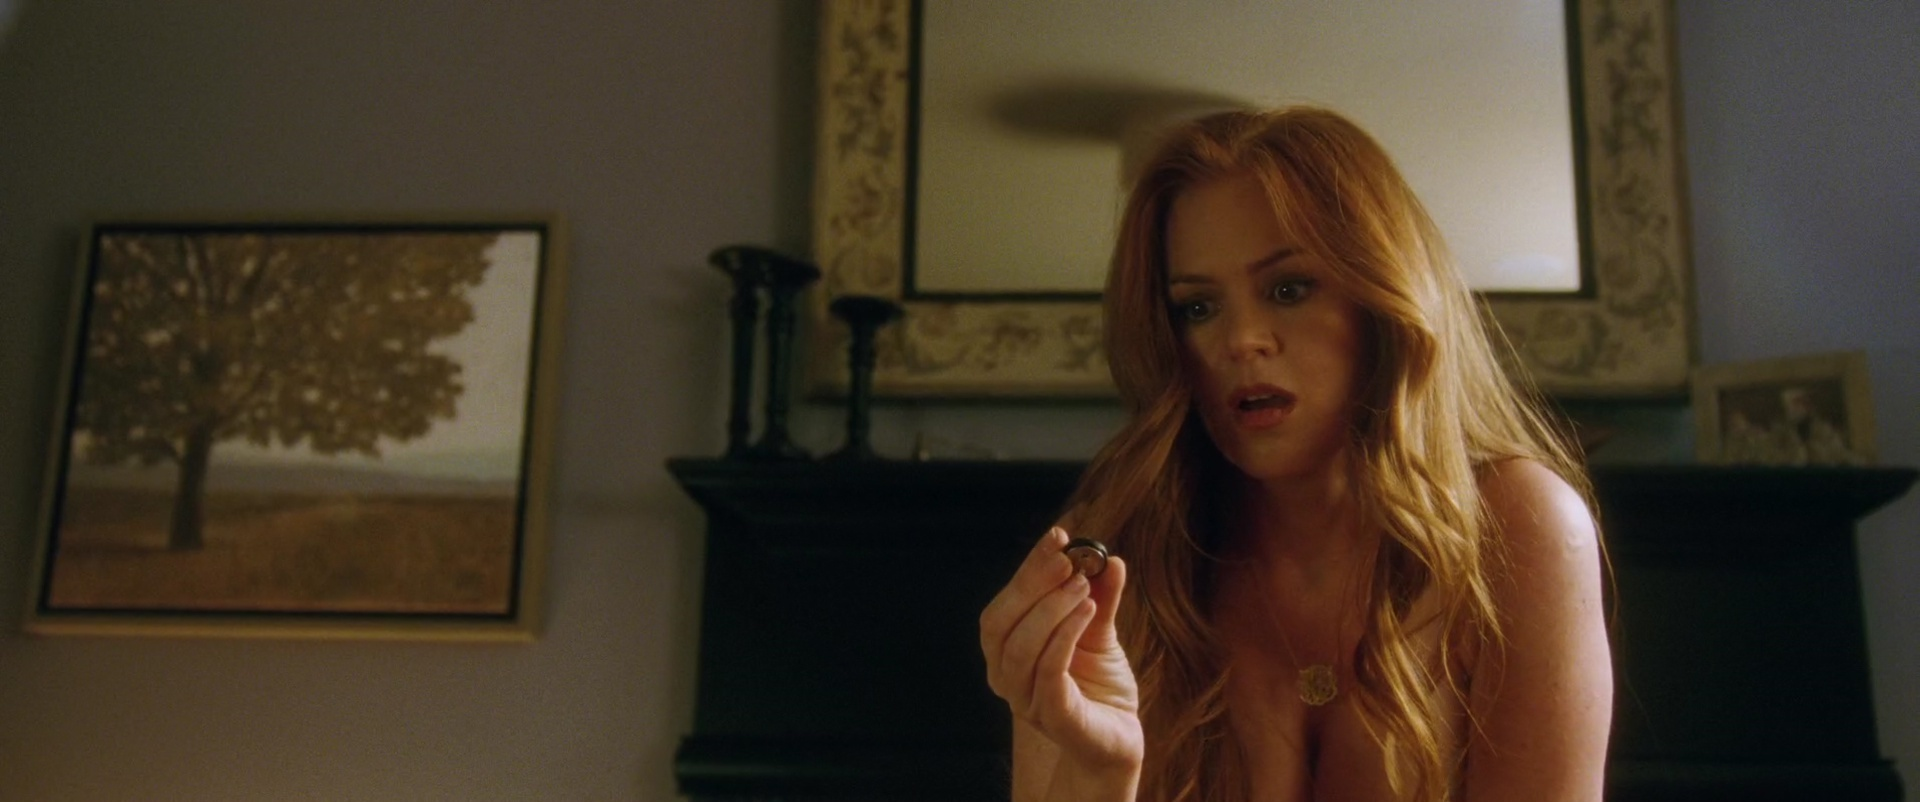 Download Sex Pics Isla Fisher Desnuda En Keeping Up With The Joneses